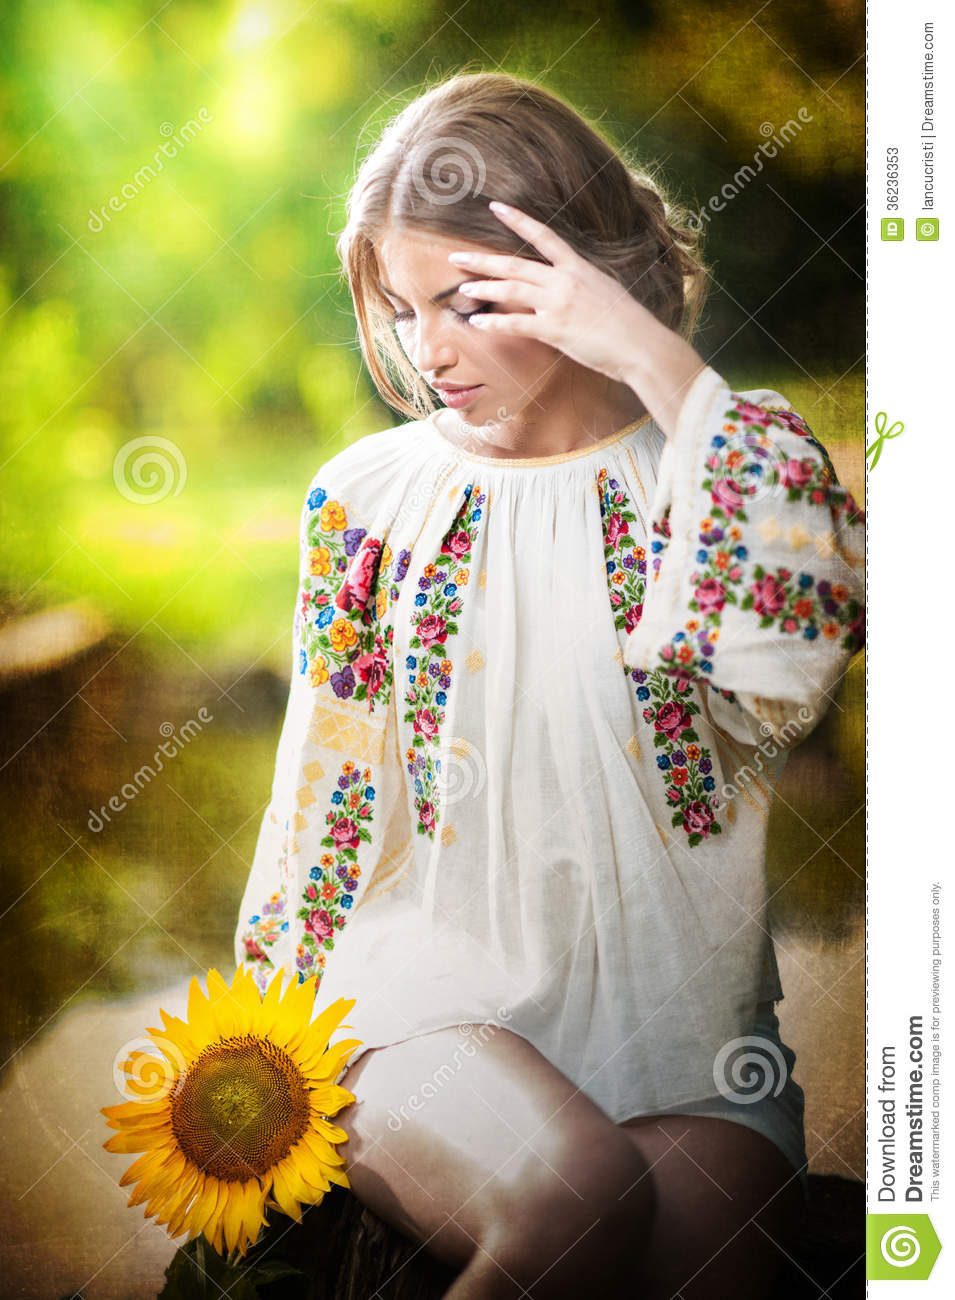 Young Girl Models Nn: Young Girl Wearing Romanian Traditional Blouse Holding A